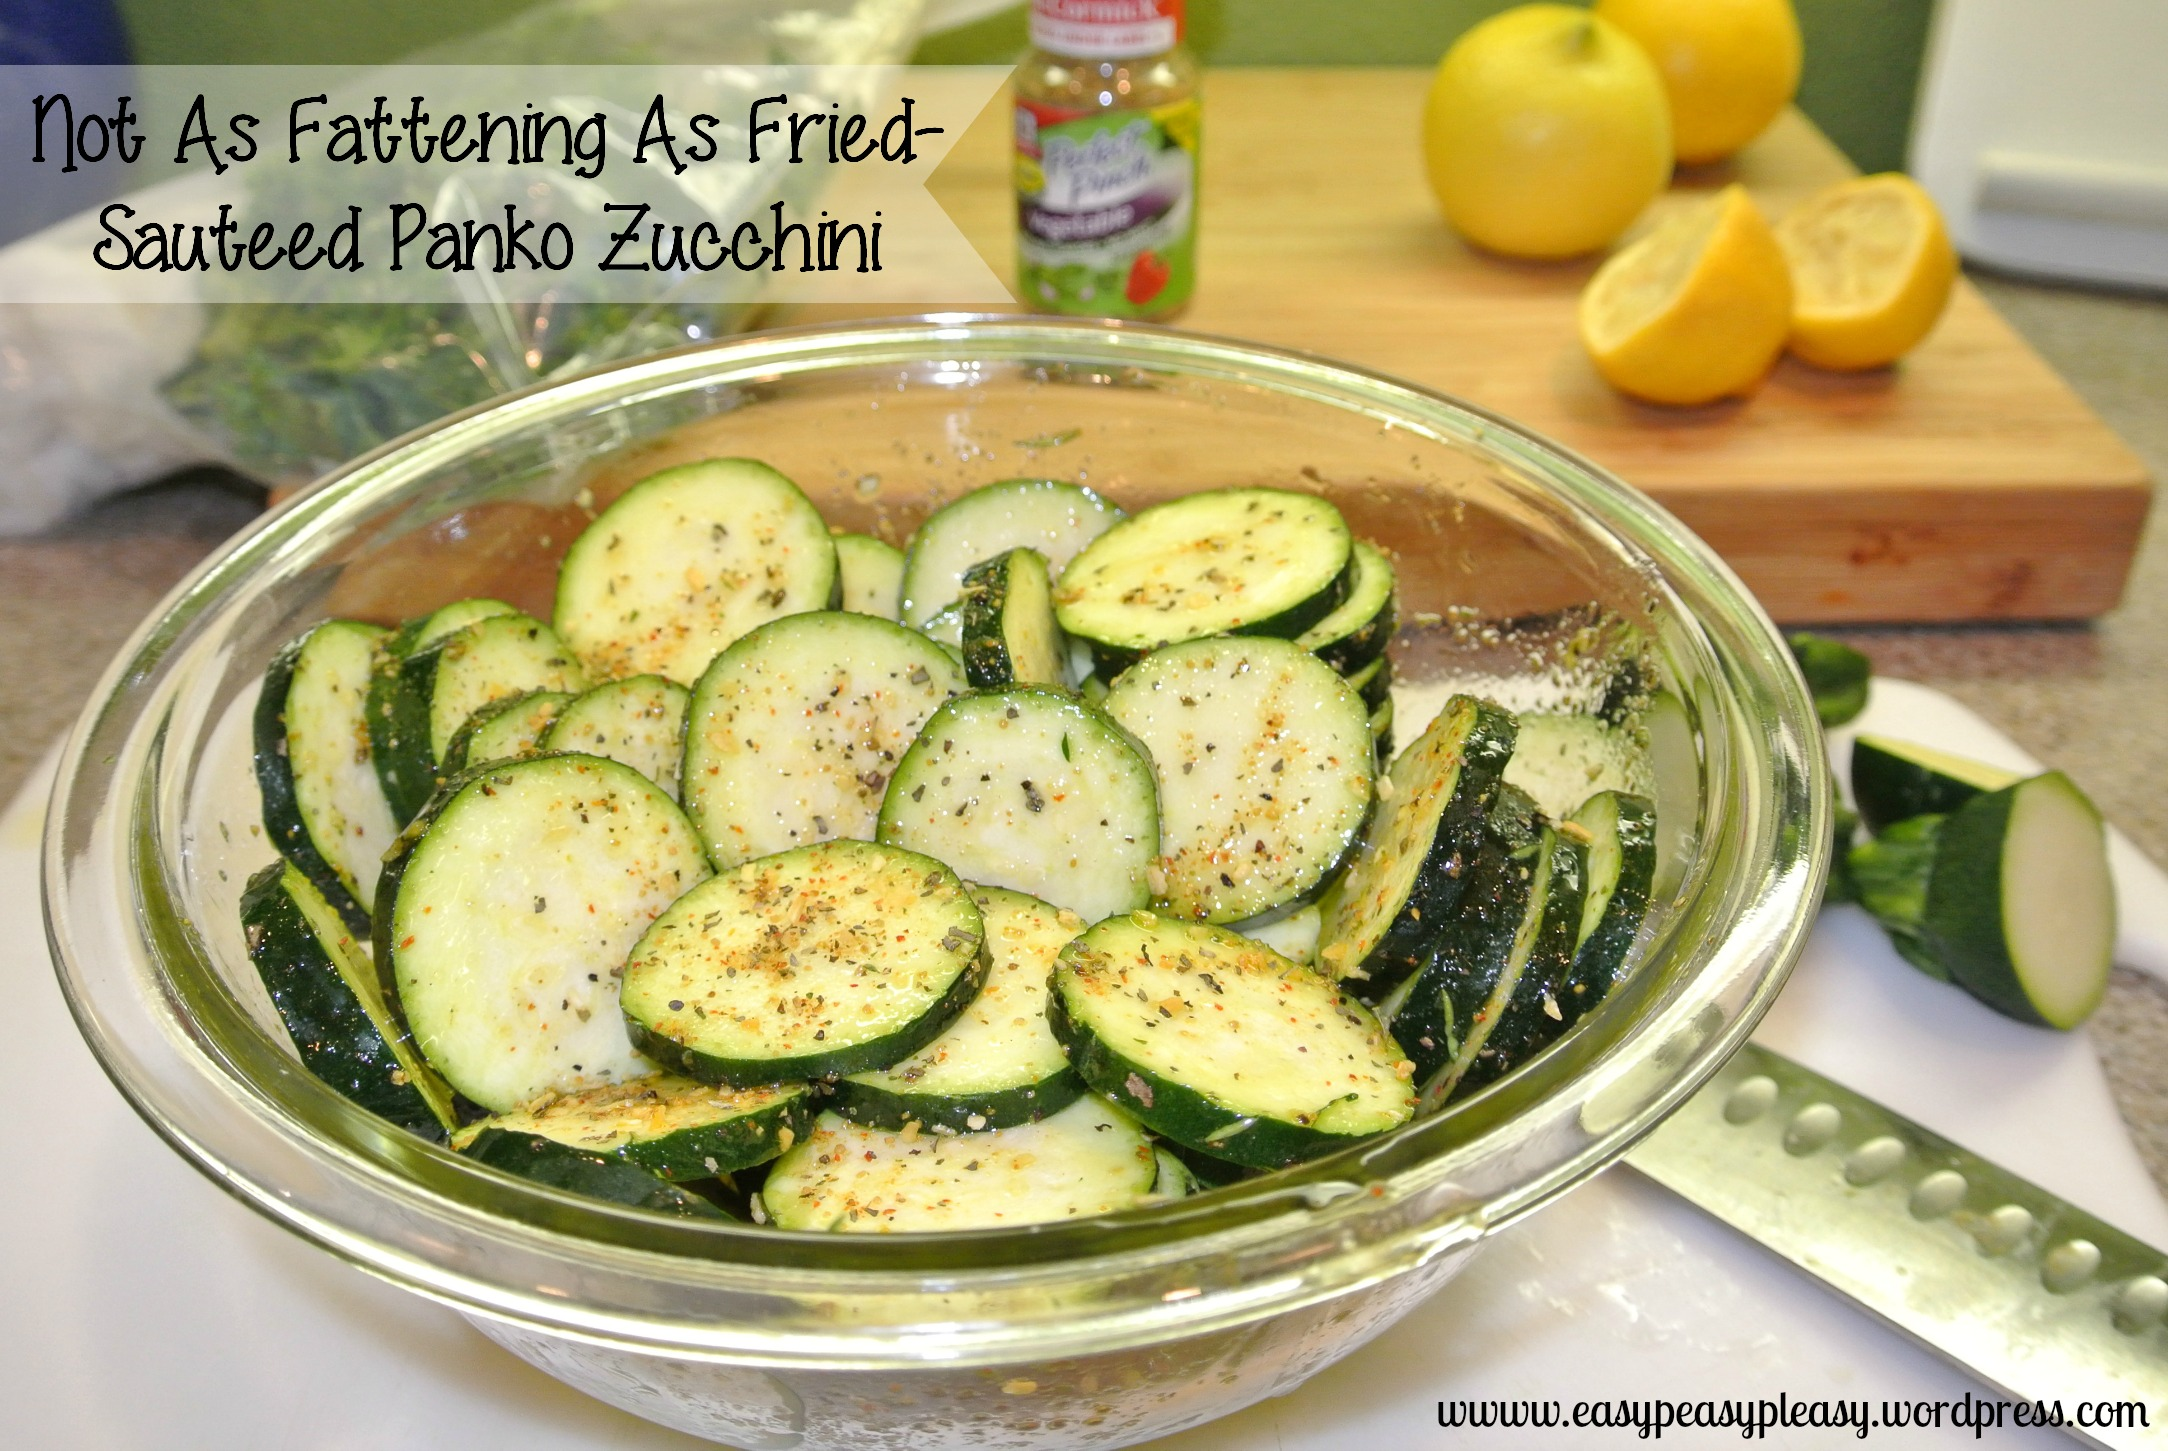 Not As Fattening As Fried-Sauteed Panko Zucchini using only 4 ingredients